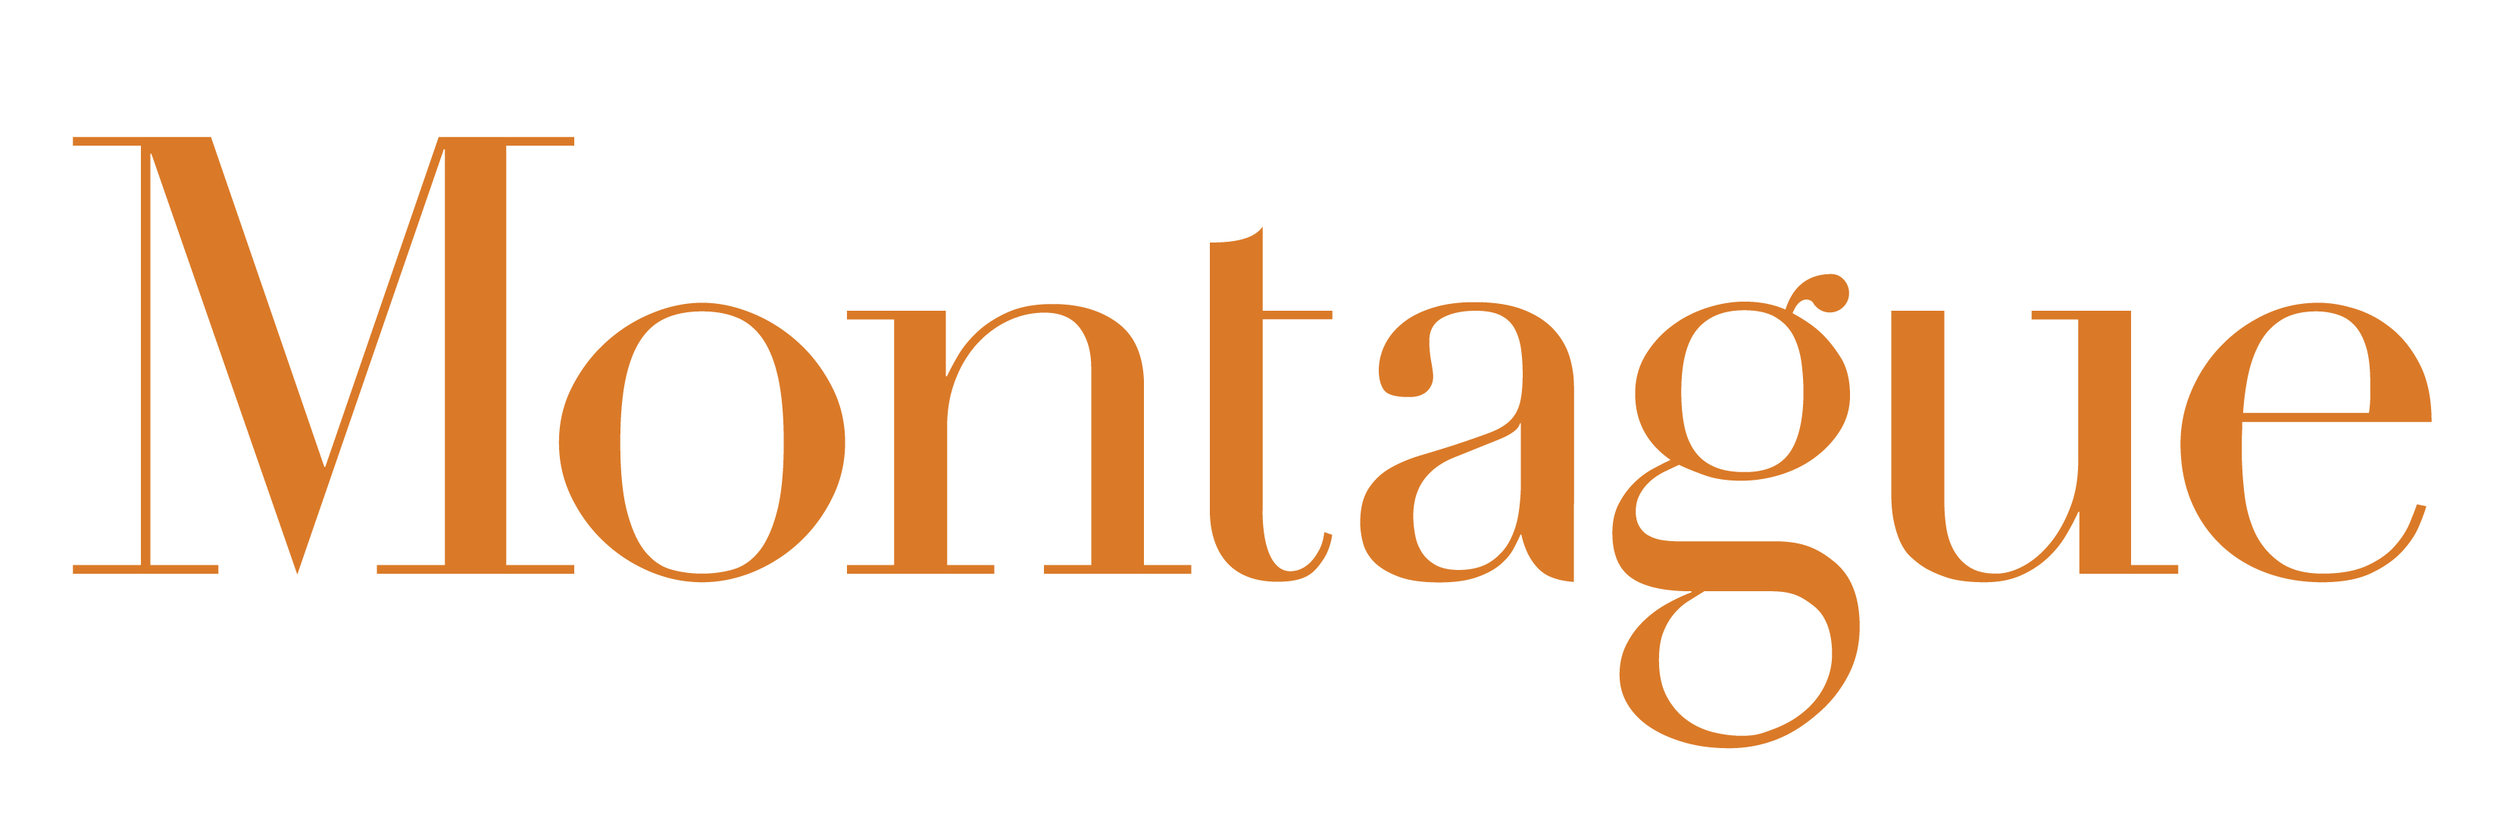 montague logo high res-01.jpg